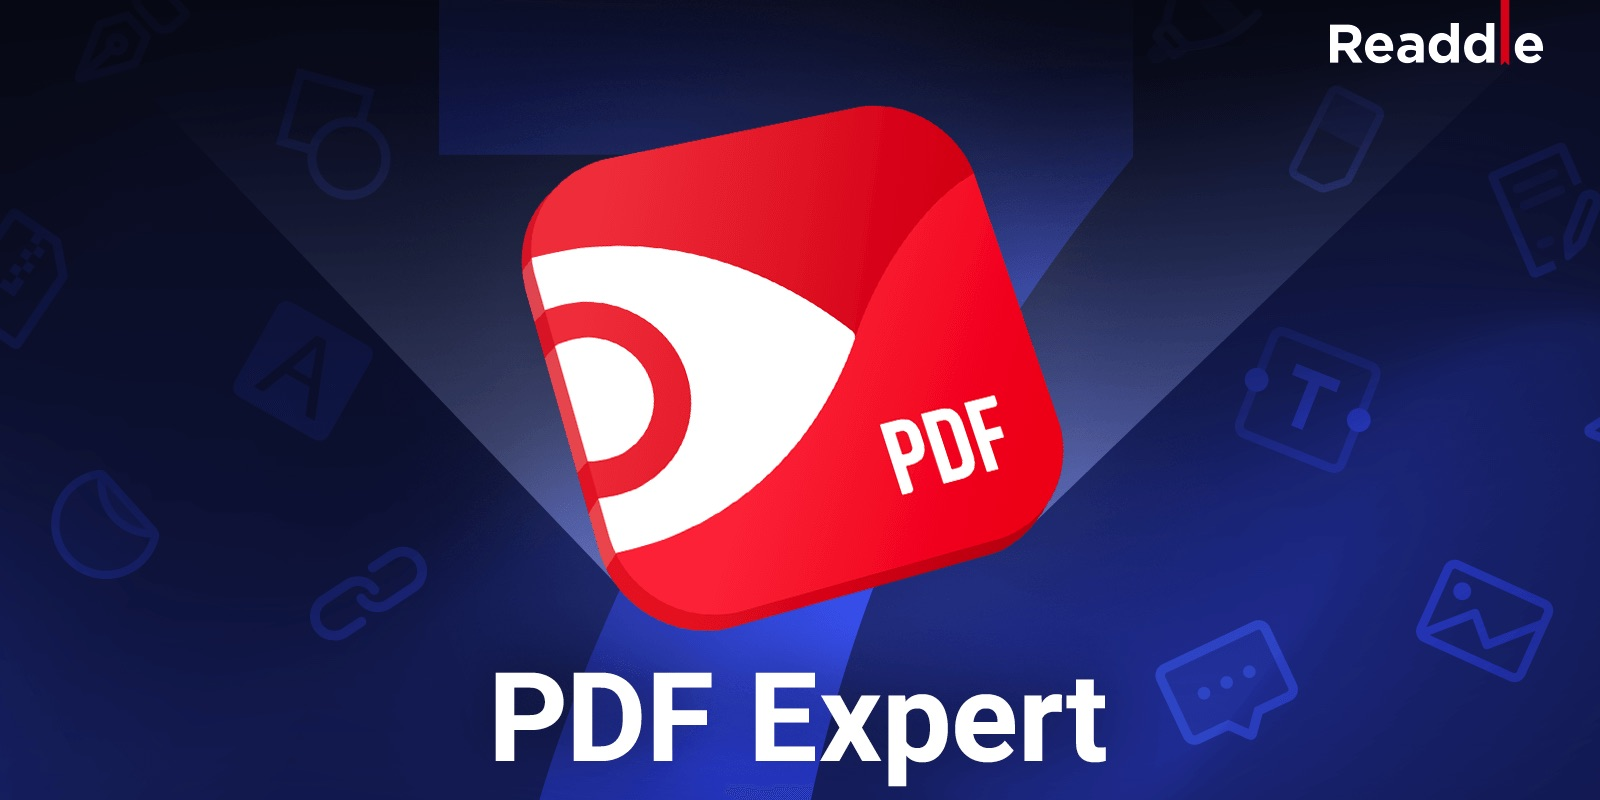 Readdle's Updated PDF Expert 7 for iOS Goes Free, Intros New PRO Tier